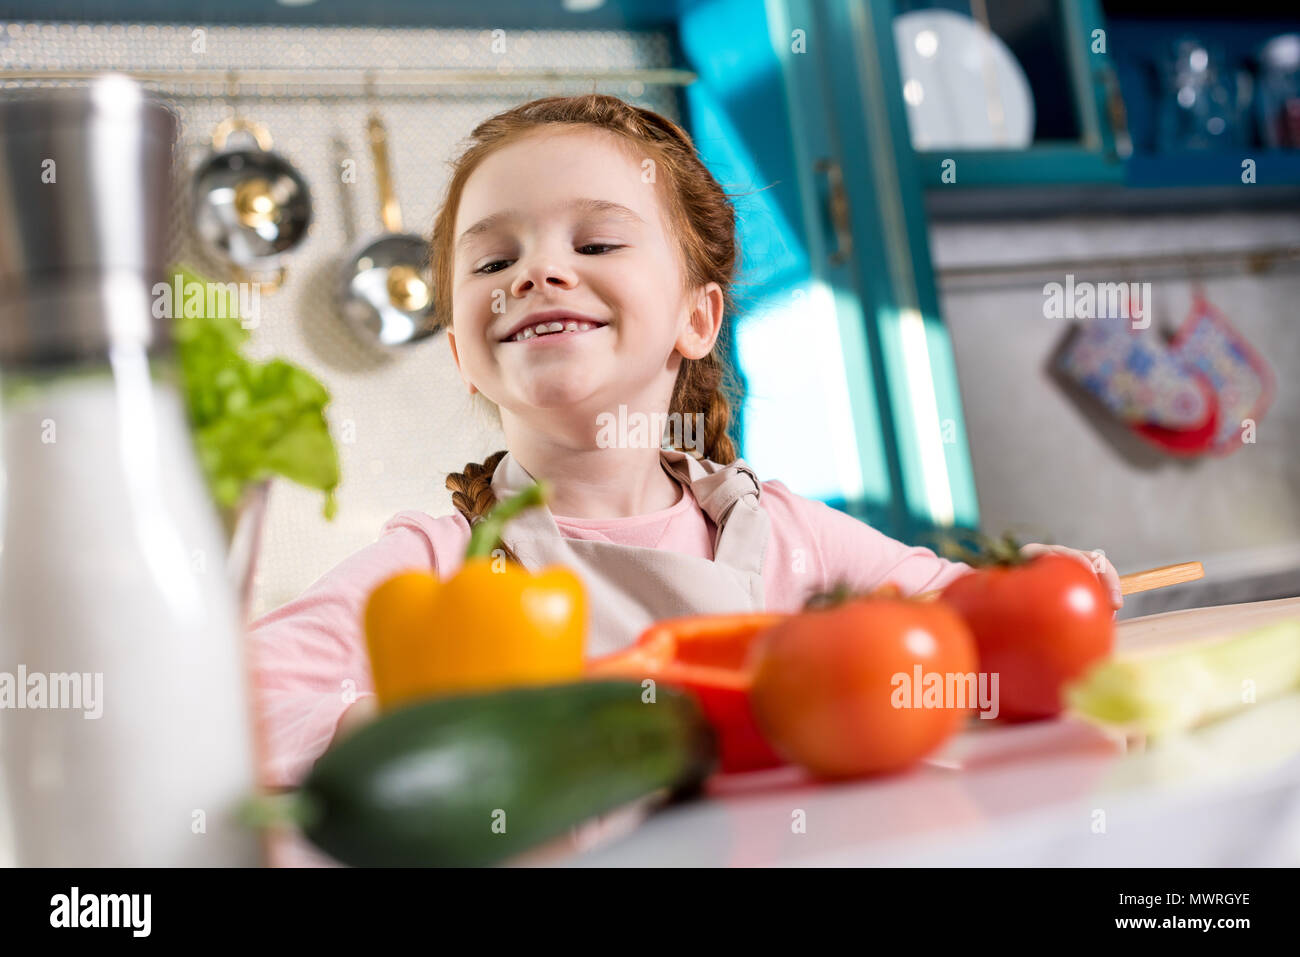 adorable little child smiling while cooking in kitchen - Stock Image